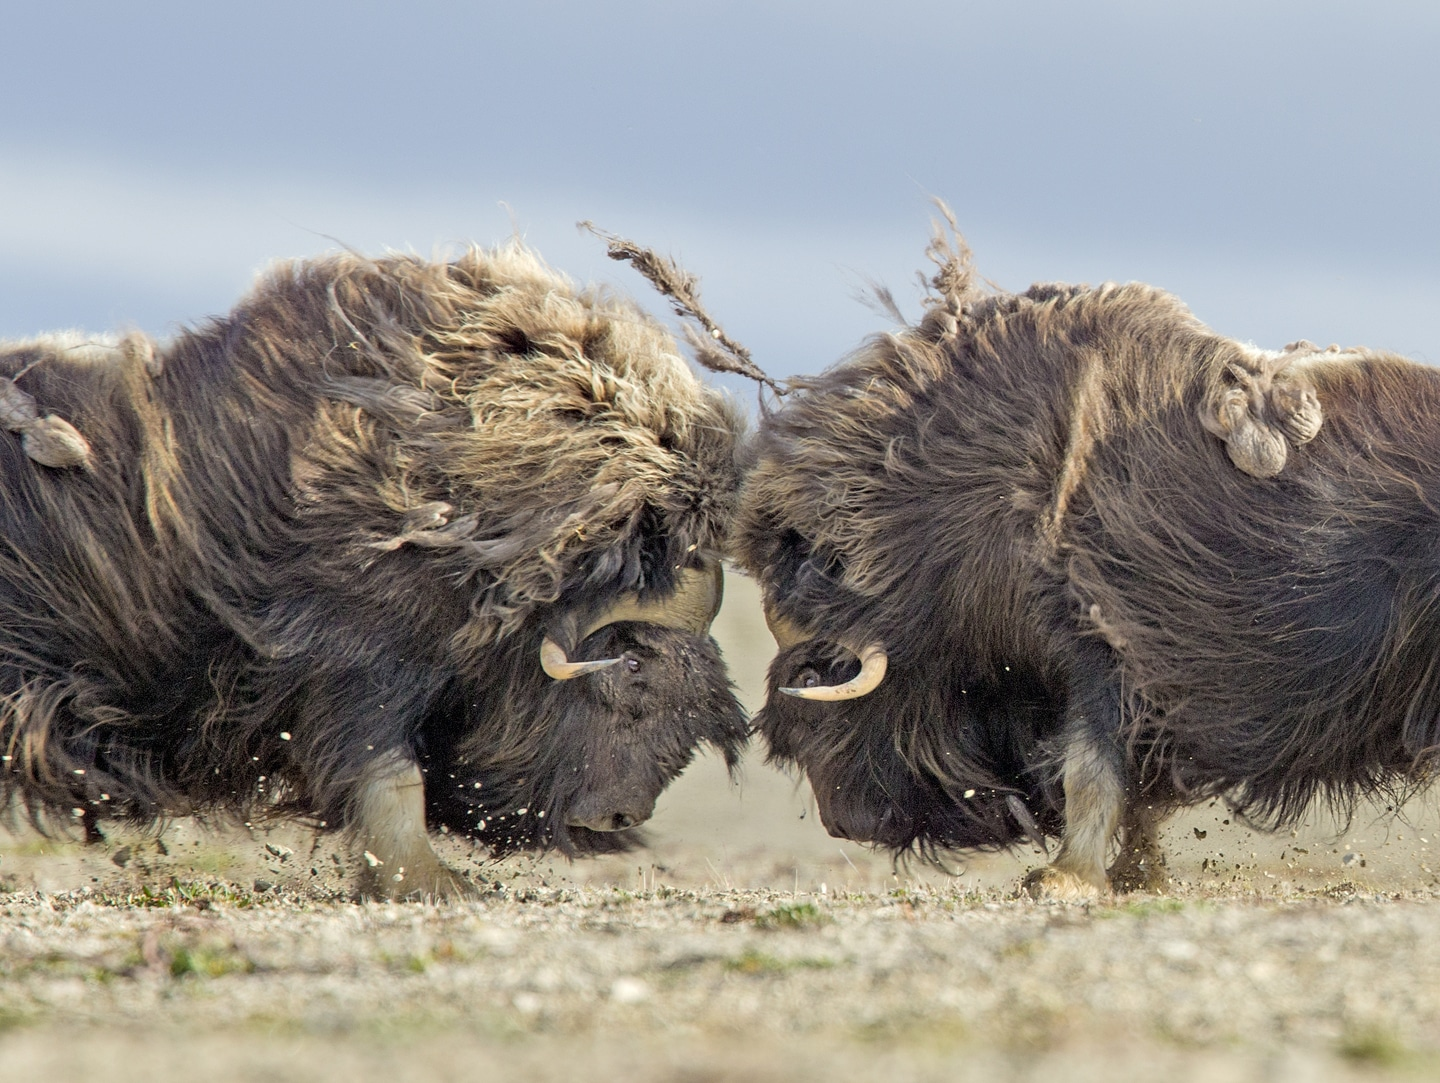 Bull muskoxen face off and fight for dominance on the barren Arctic tundra near Arctic Watch Wilderness Lodge. Photo Nansen Weber